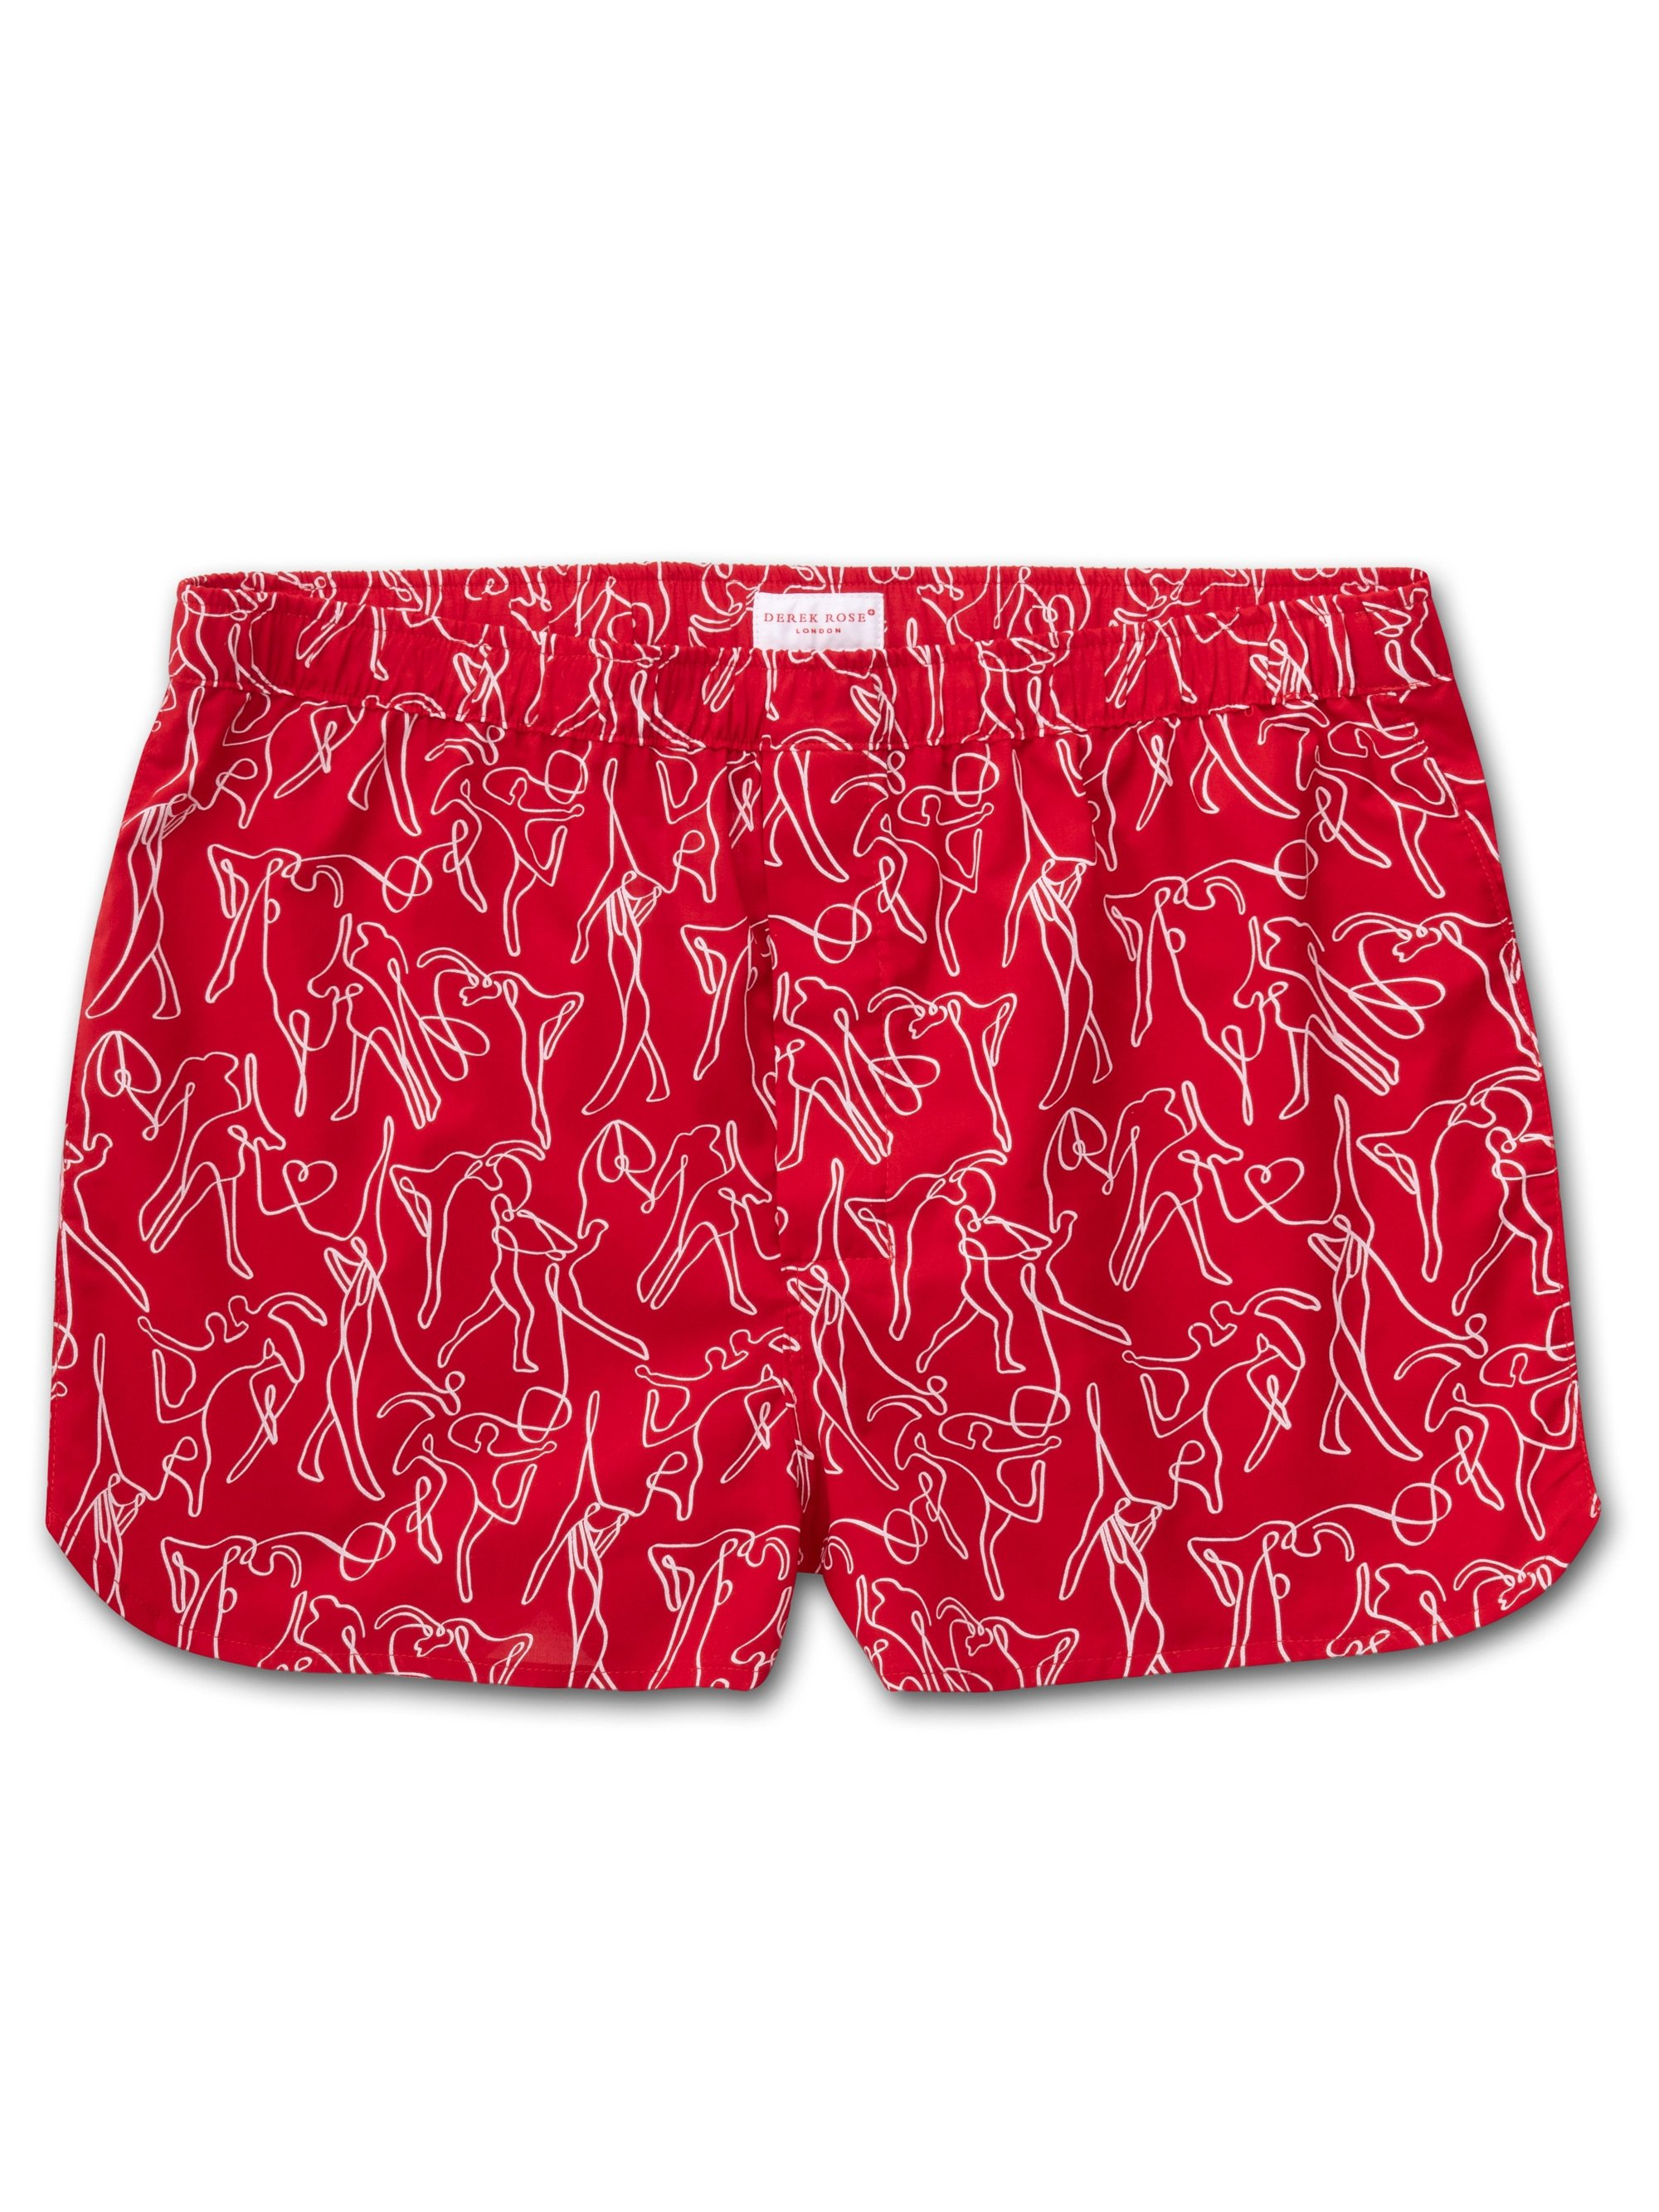 Men's Modern Fit Boxer Shorts Nelson 76 Cotton Batiste Red